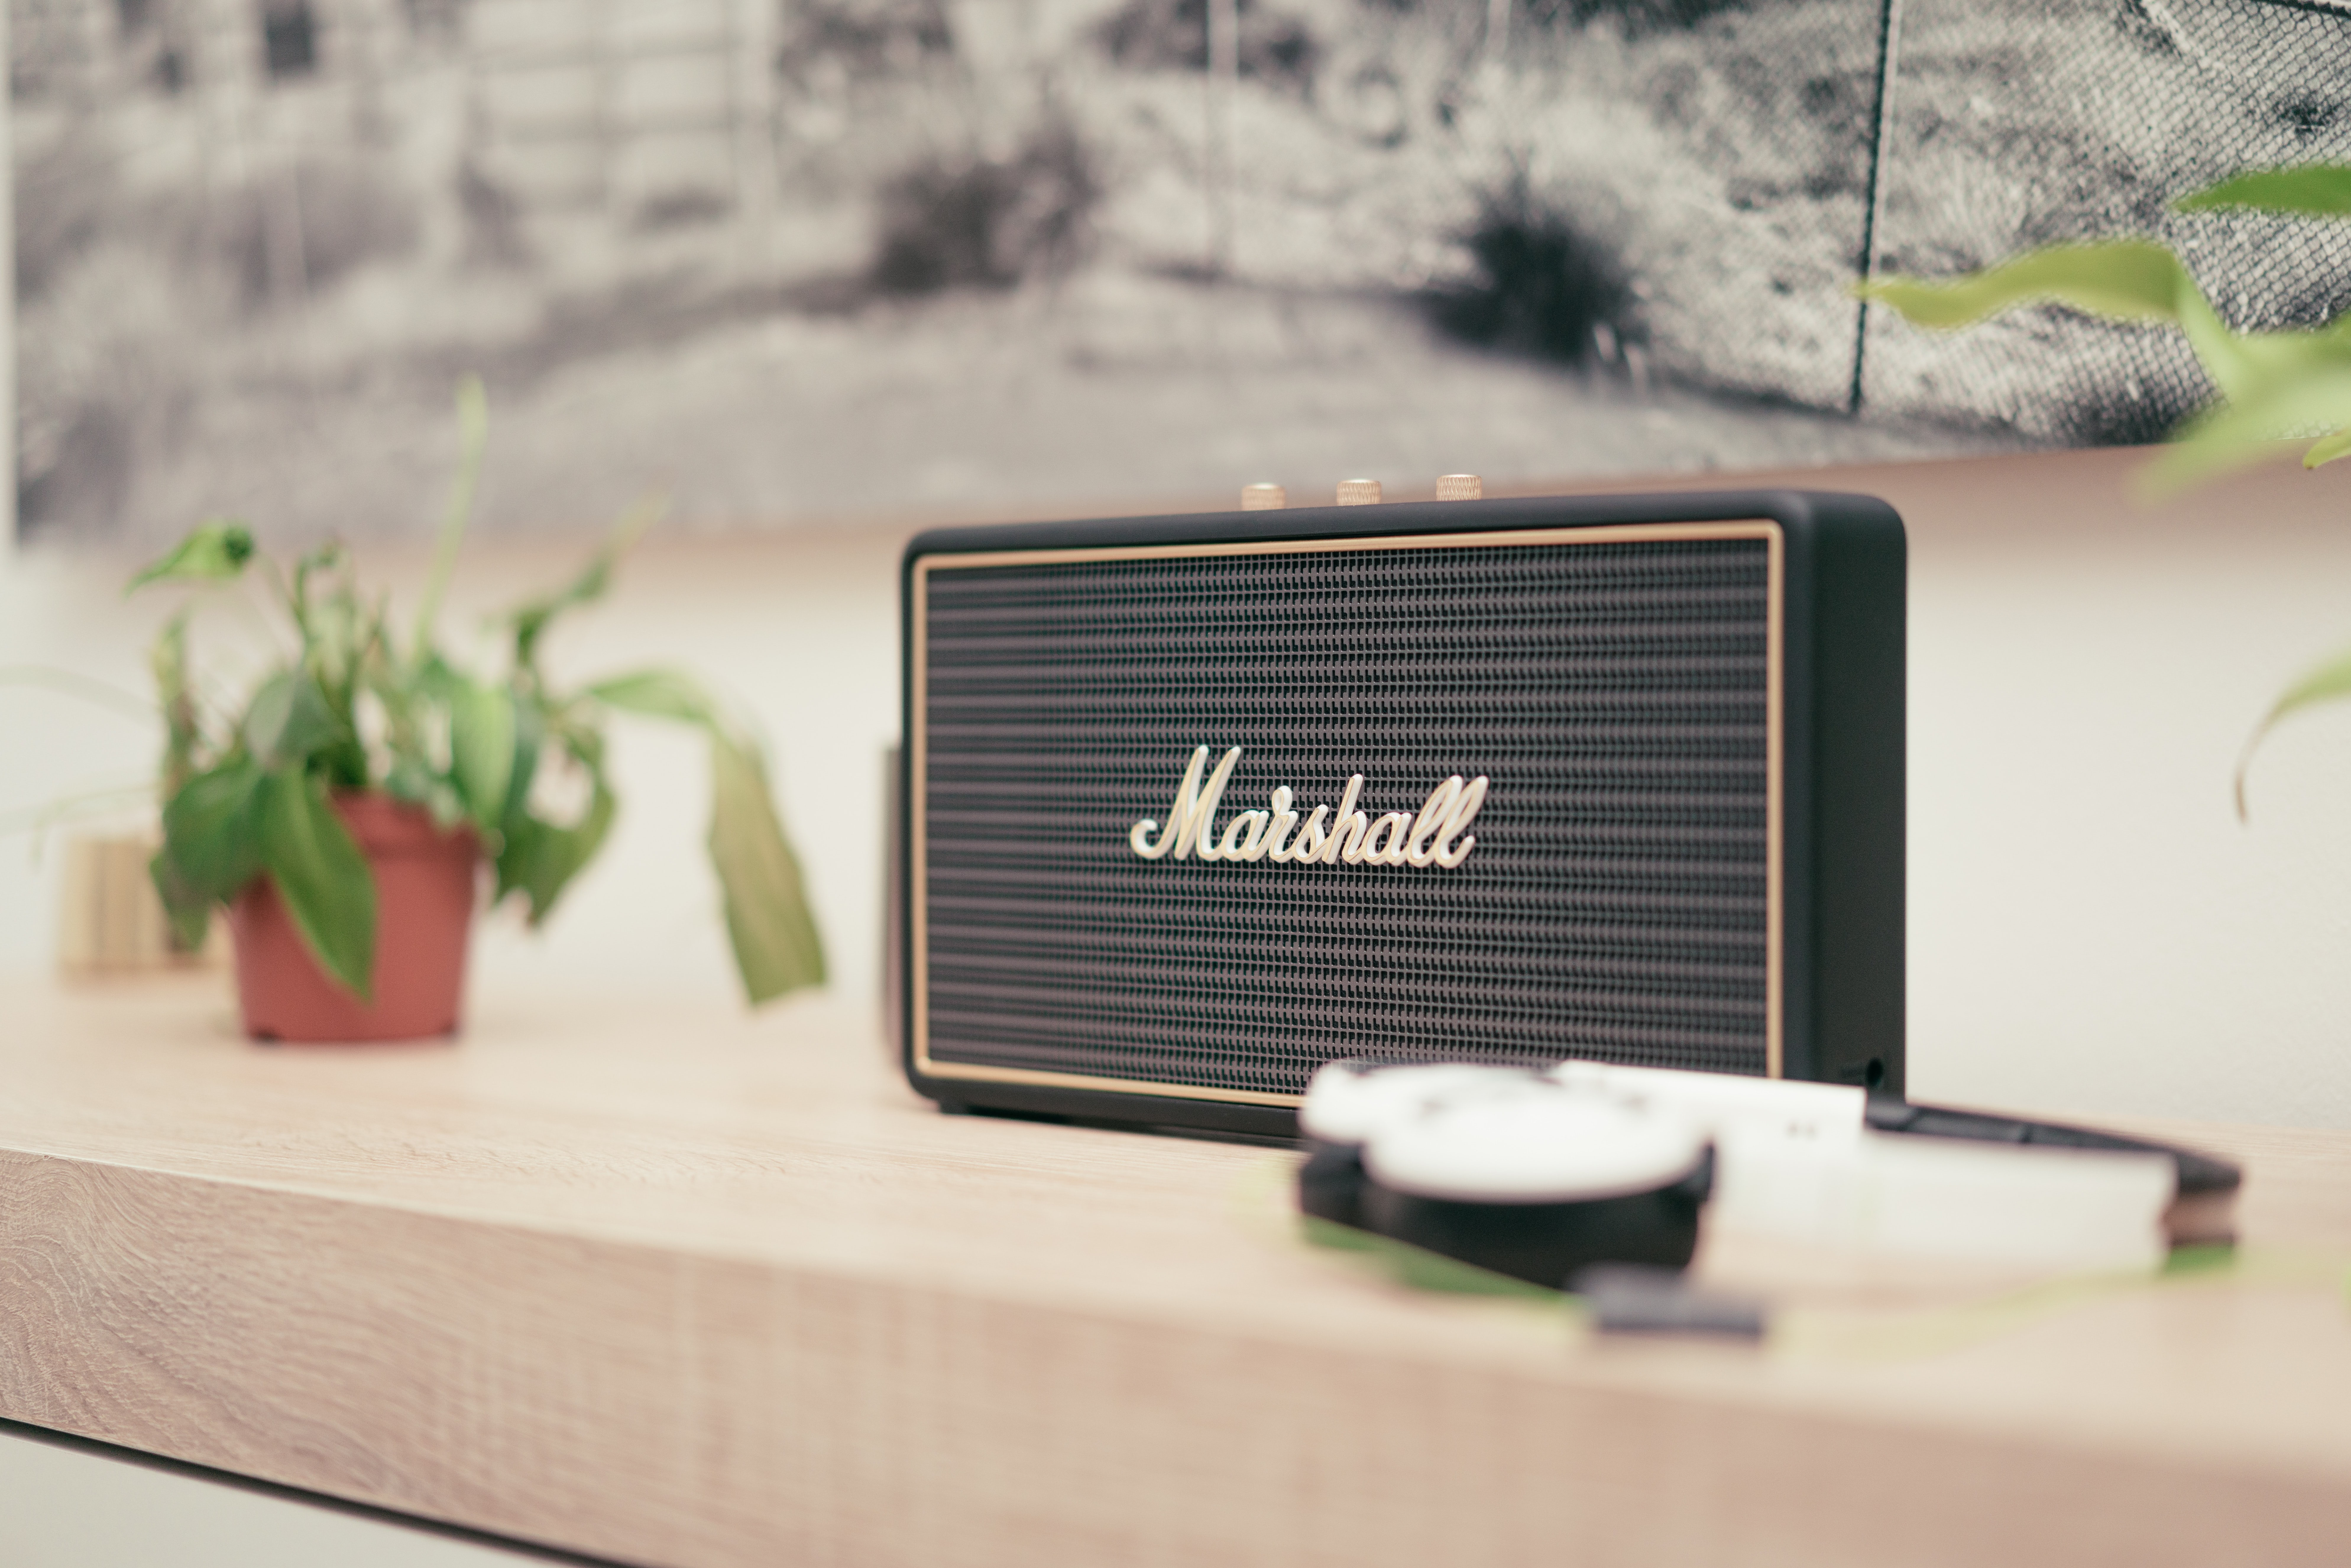 Small Marshall speaker on top of wooden table with plant and photo